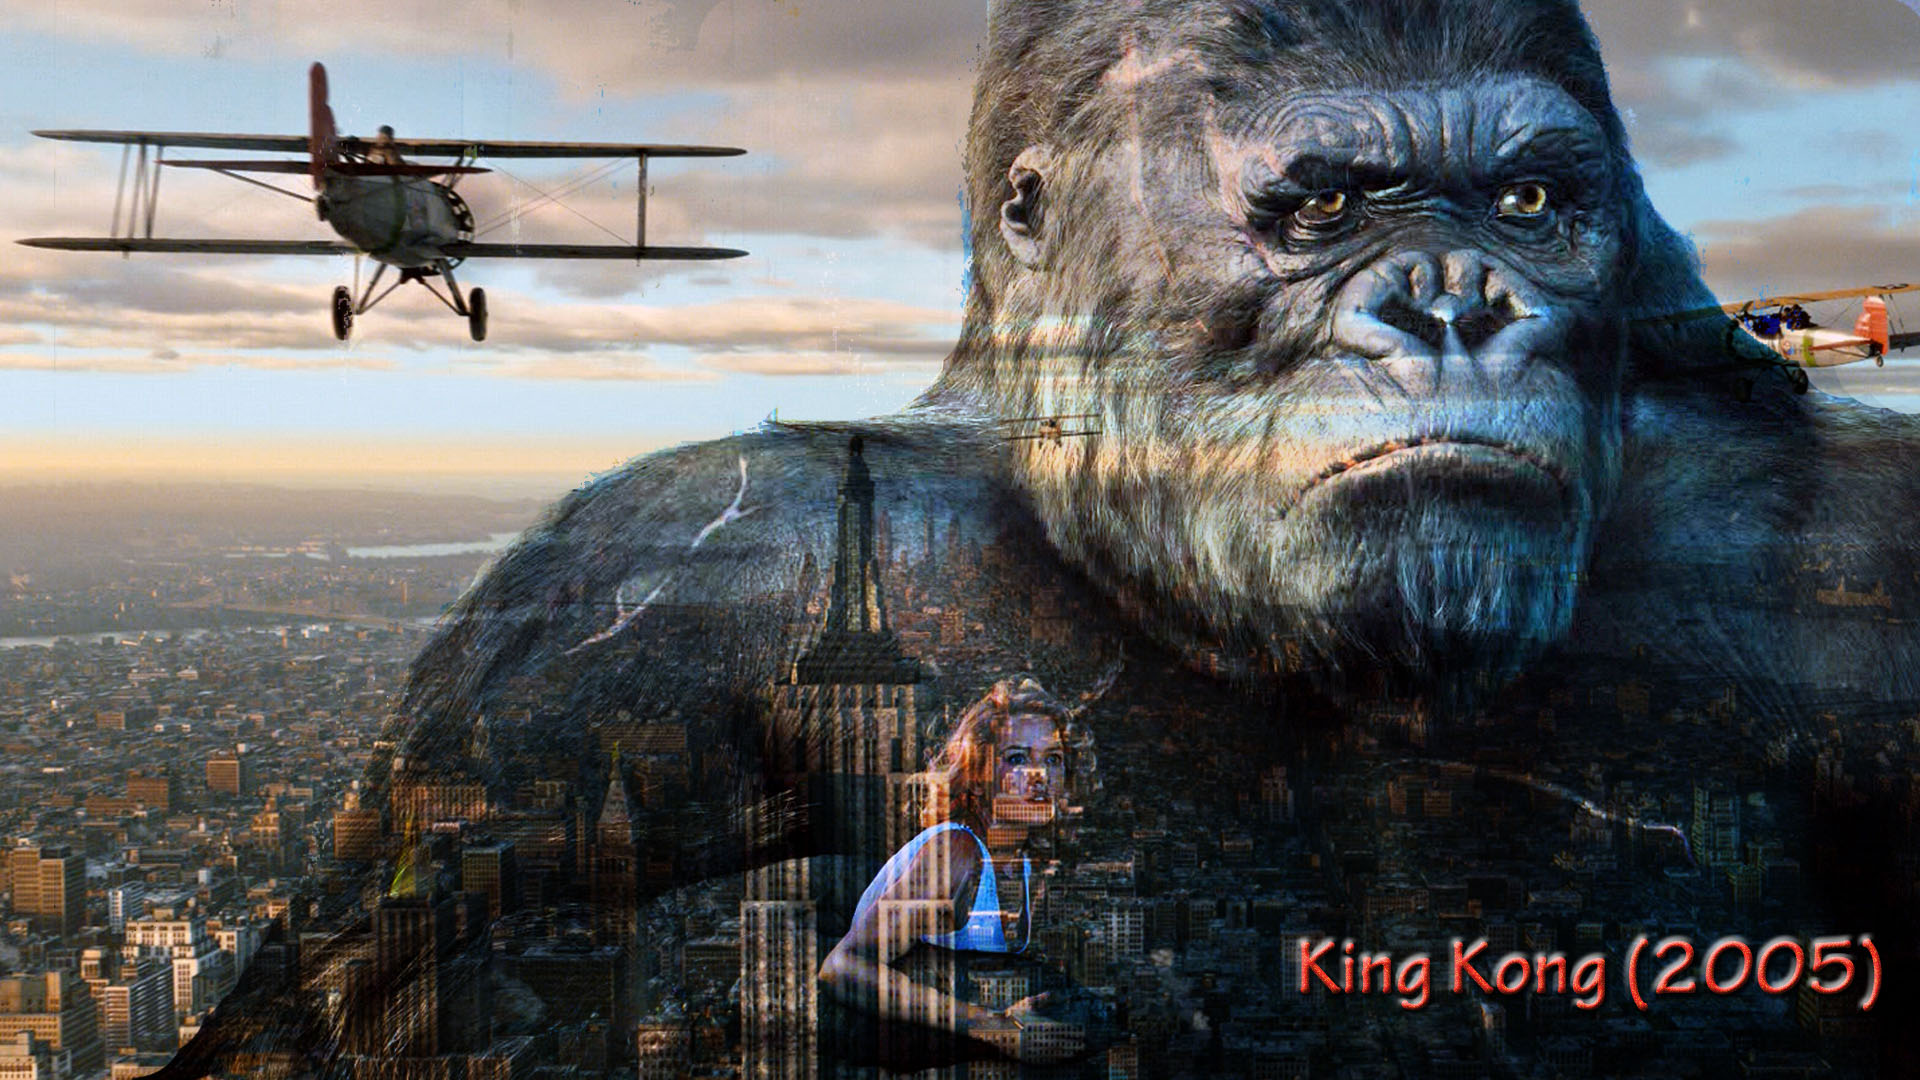 King kong 2005 movies wallpaper 34783047 fanpop - King kong 2005 hd wallpapers ...